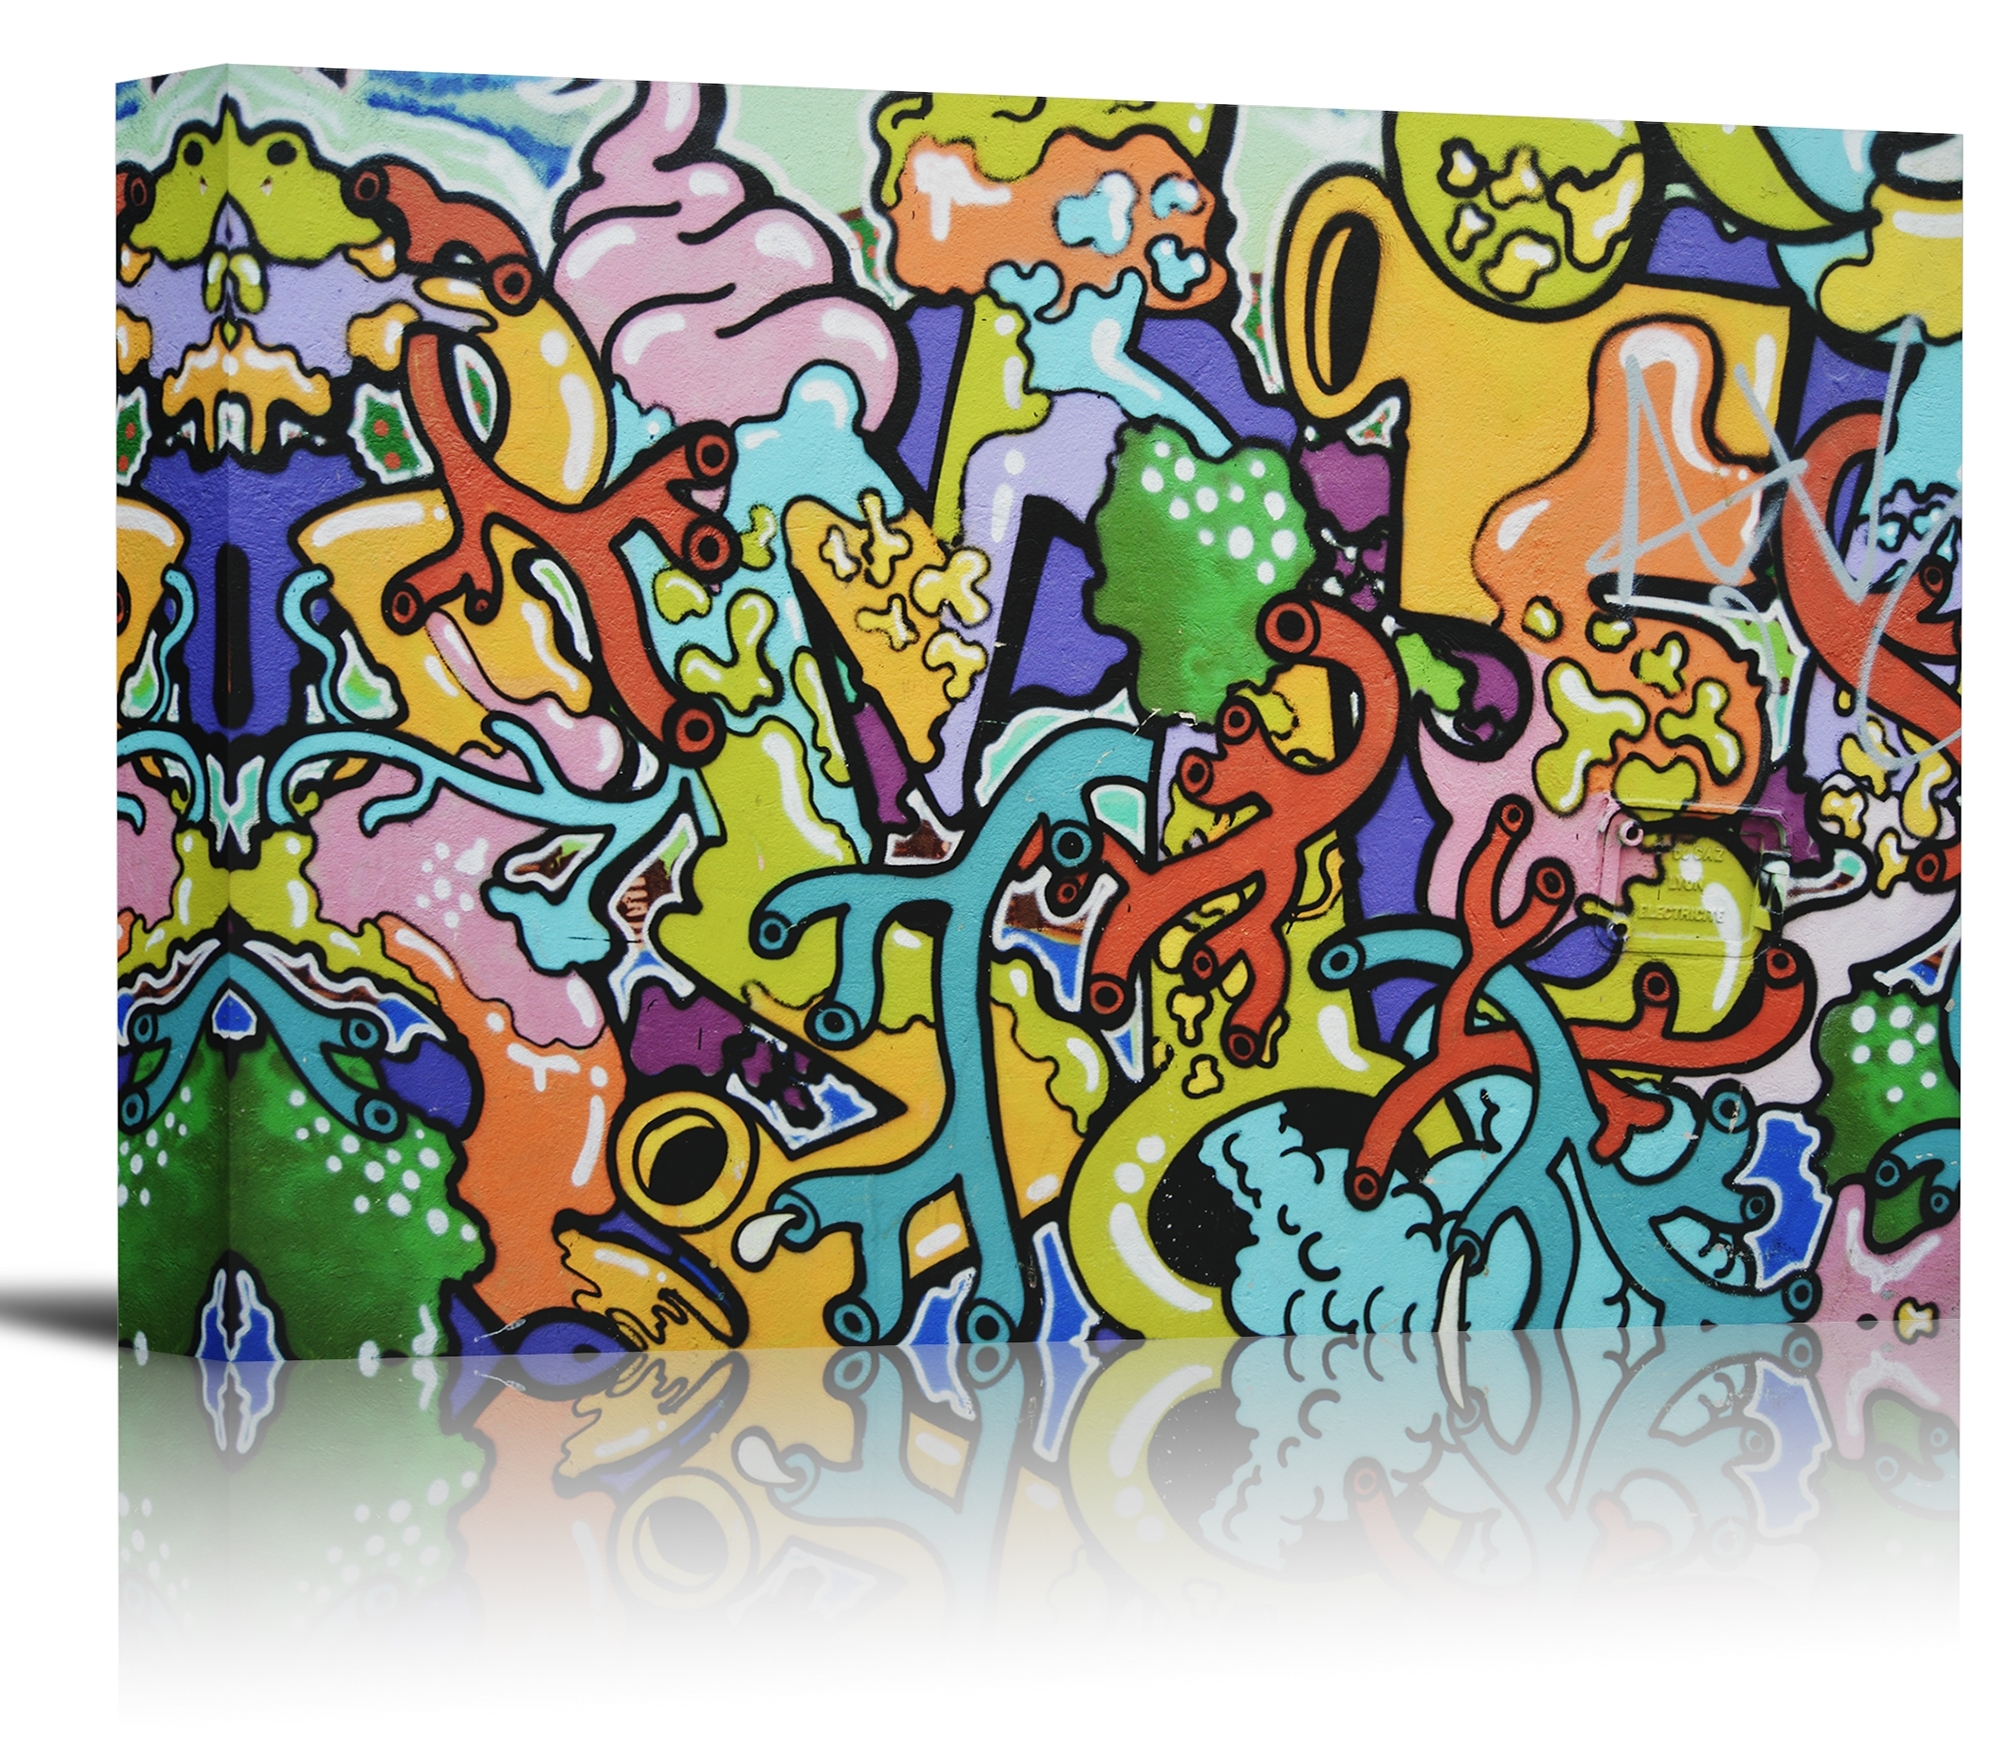 Graffiti Colorful Wall Art Print Decor Image – Canvas Stretched For Colorful Wall Art (View 12 of 20)